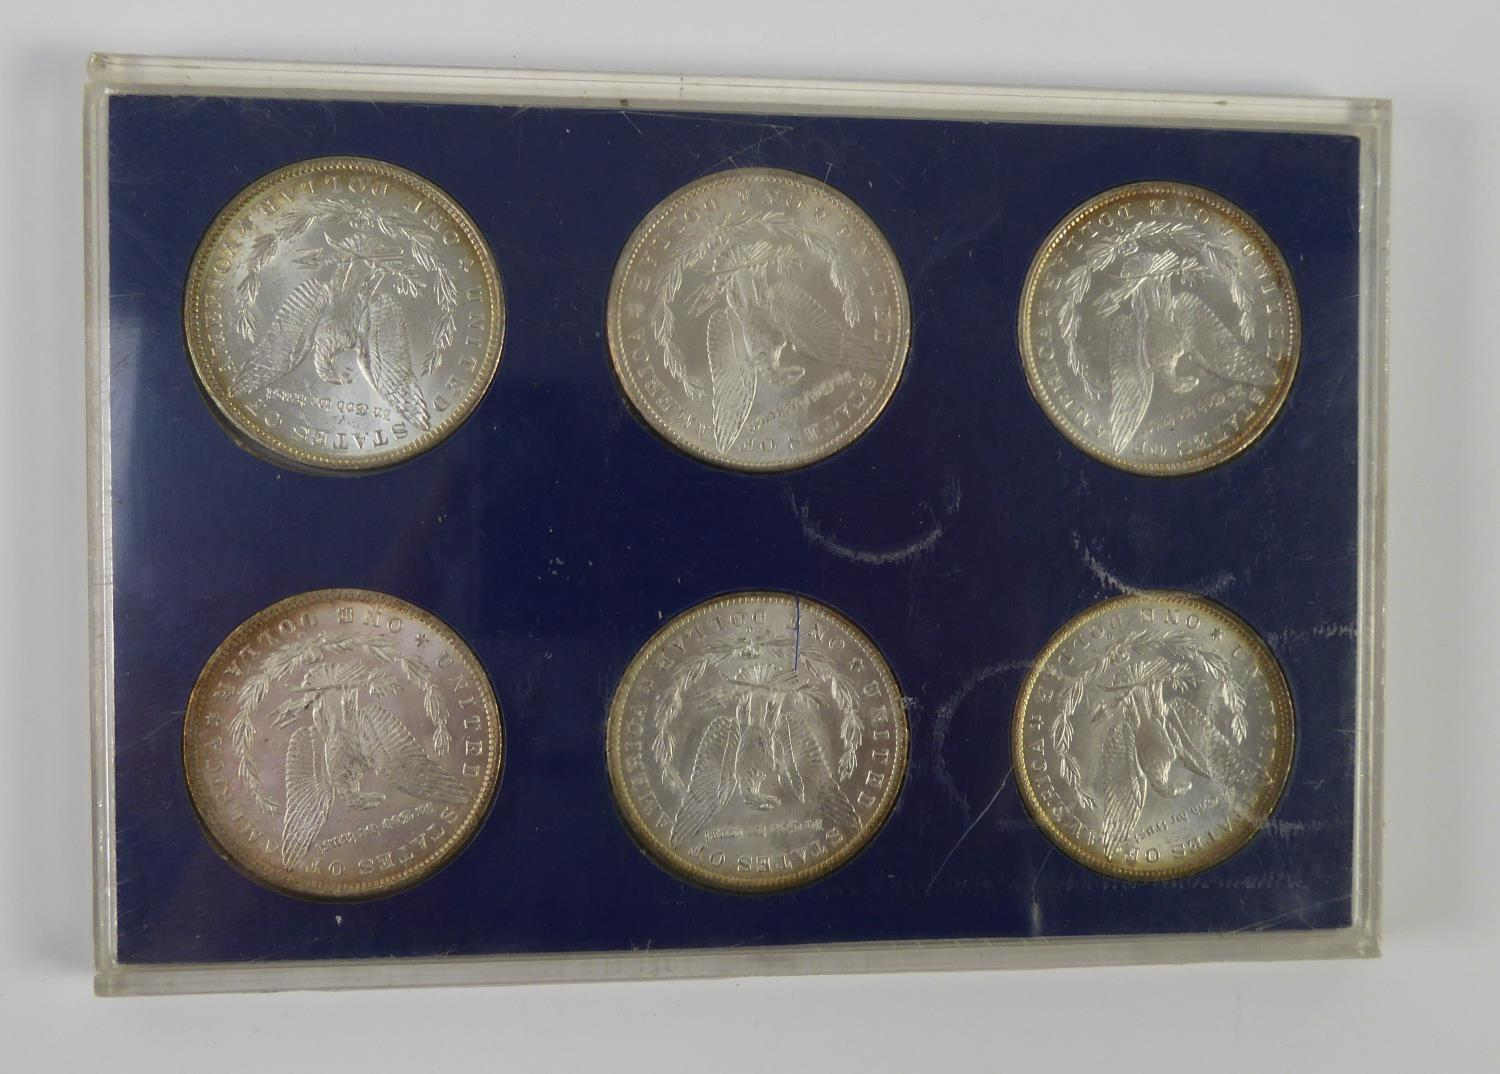 Lot 29 - SIX UNITED STATES OF AMERICA 19th CENTURY SILVER DOLLAR COINS, 1880, 81, 82, 83, 84 and 85, each